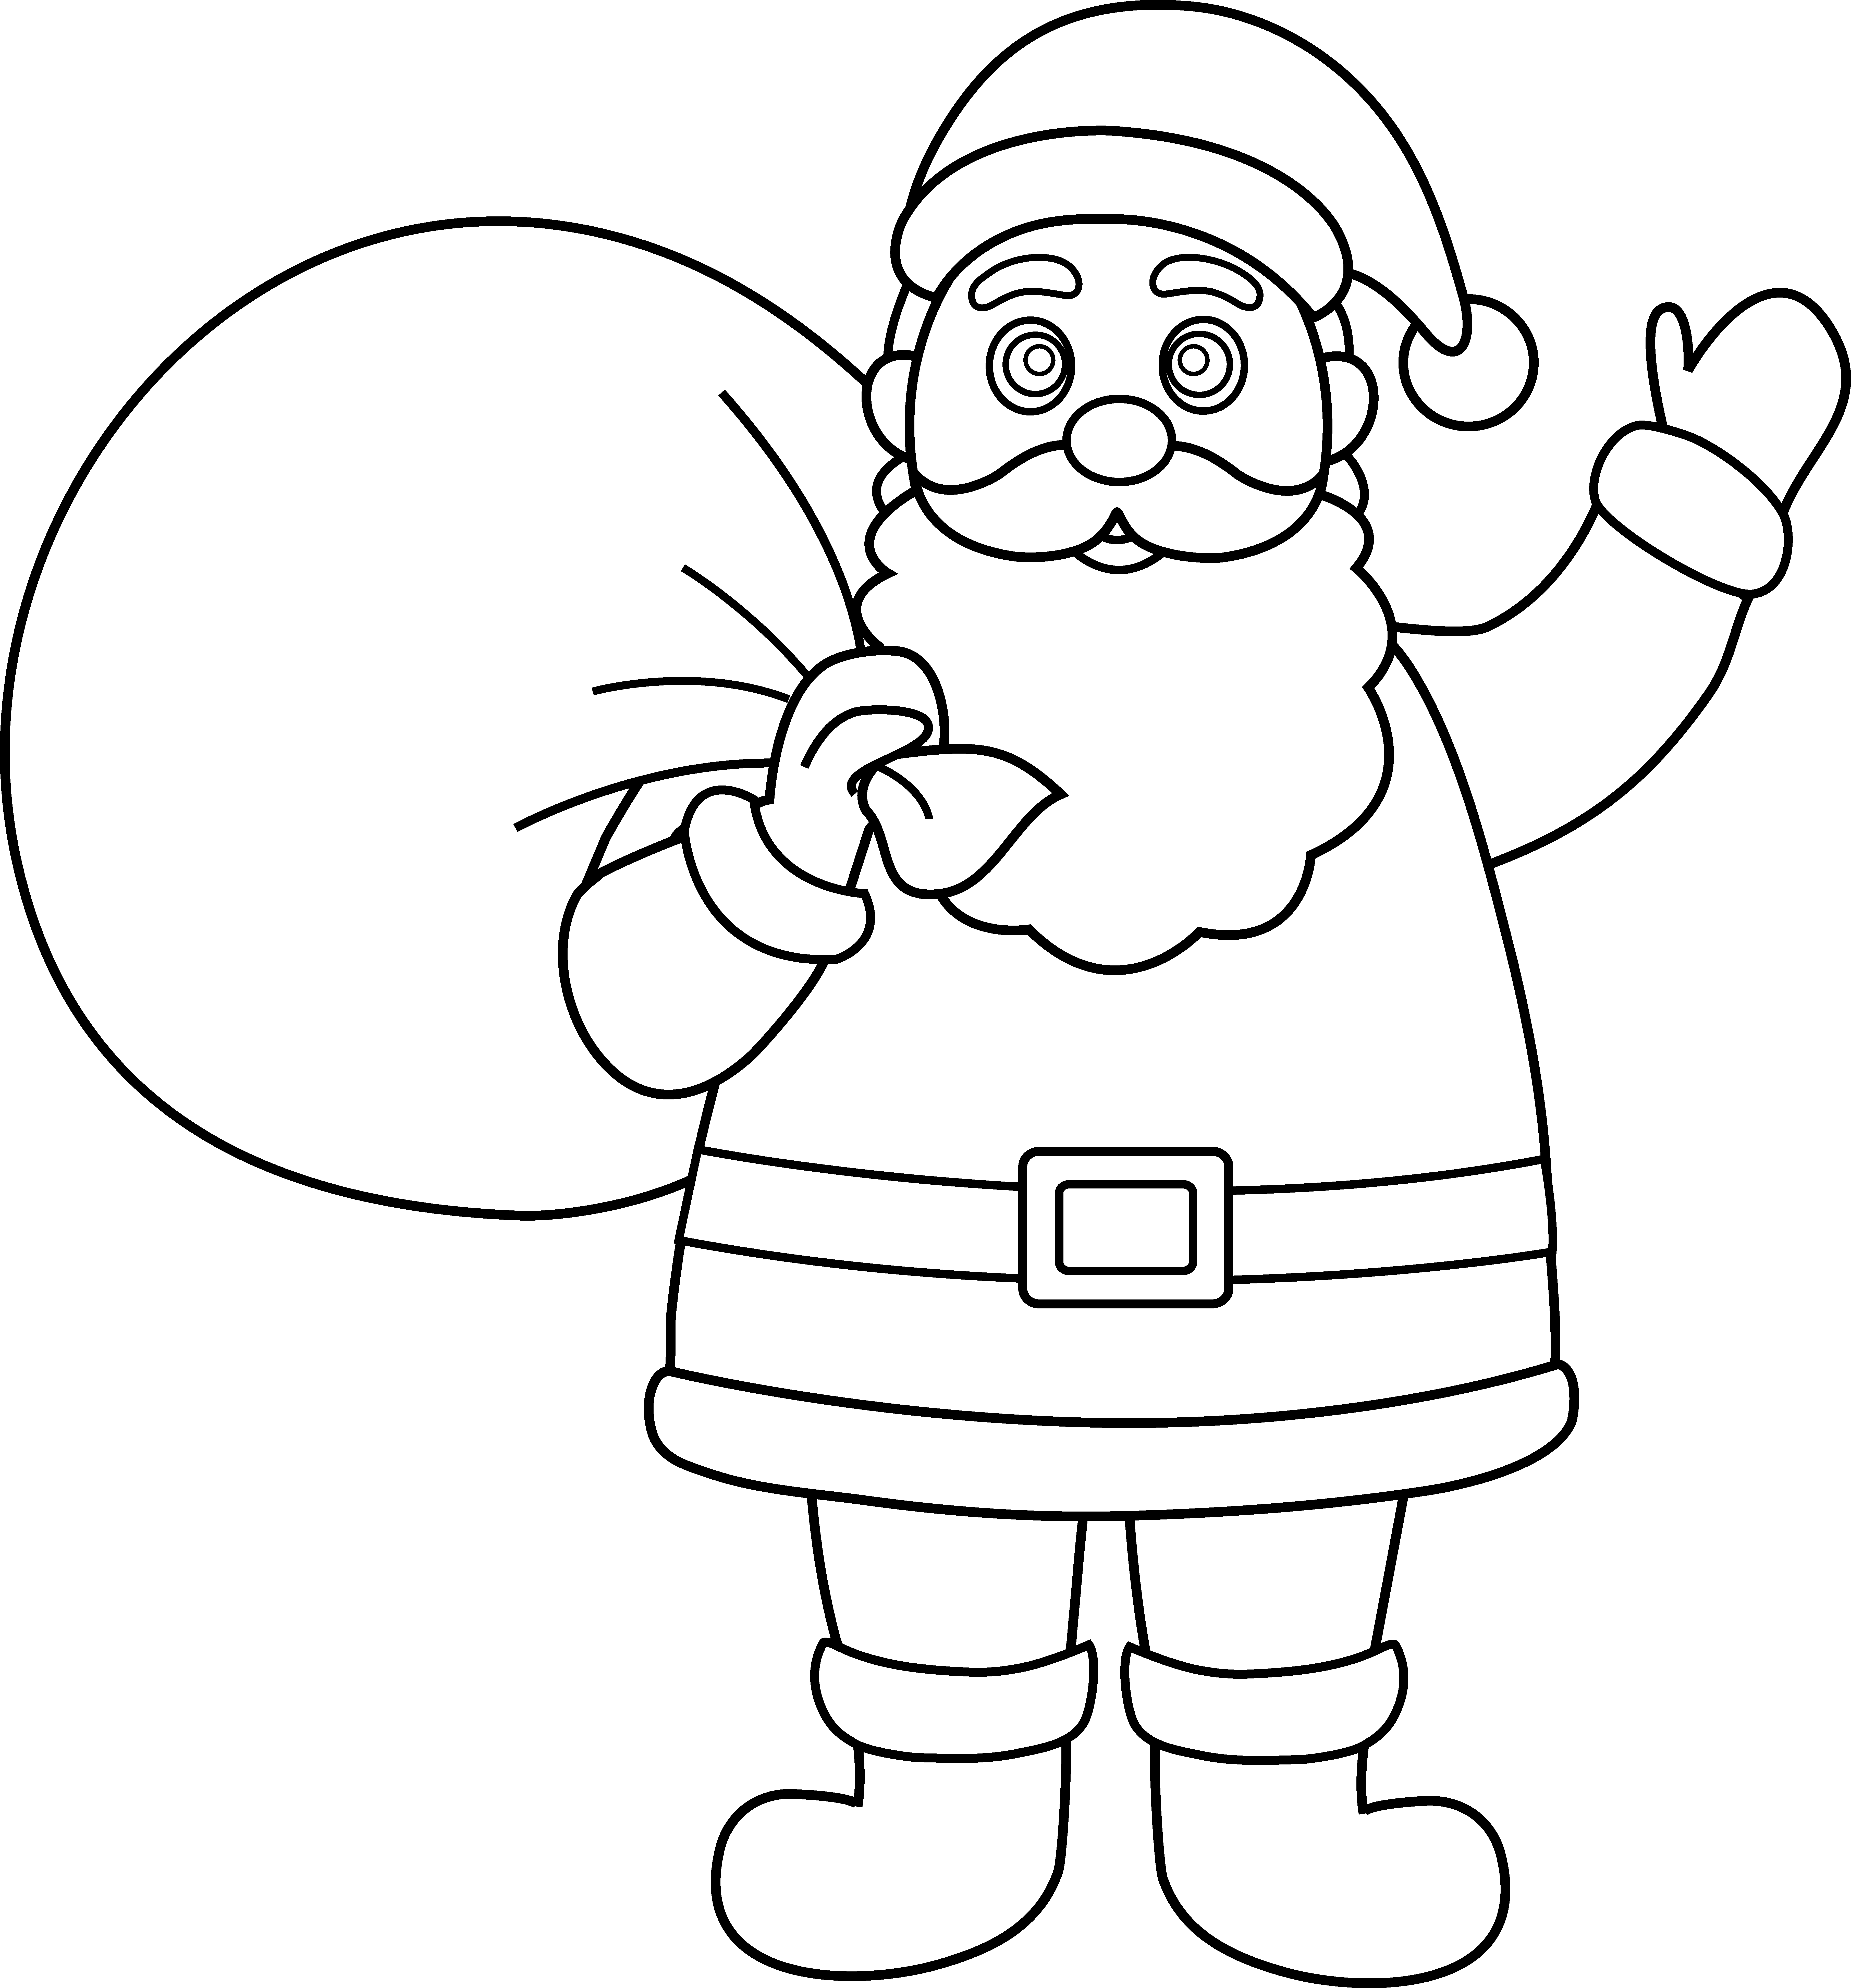 Santa Clipart Black And White. Clip Art. Ourcommunitymedia Free.